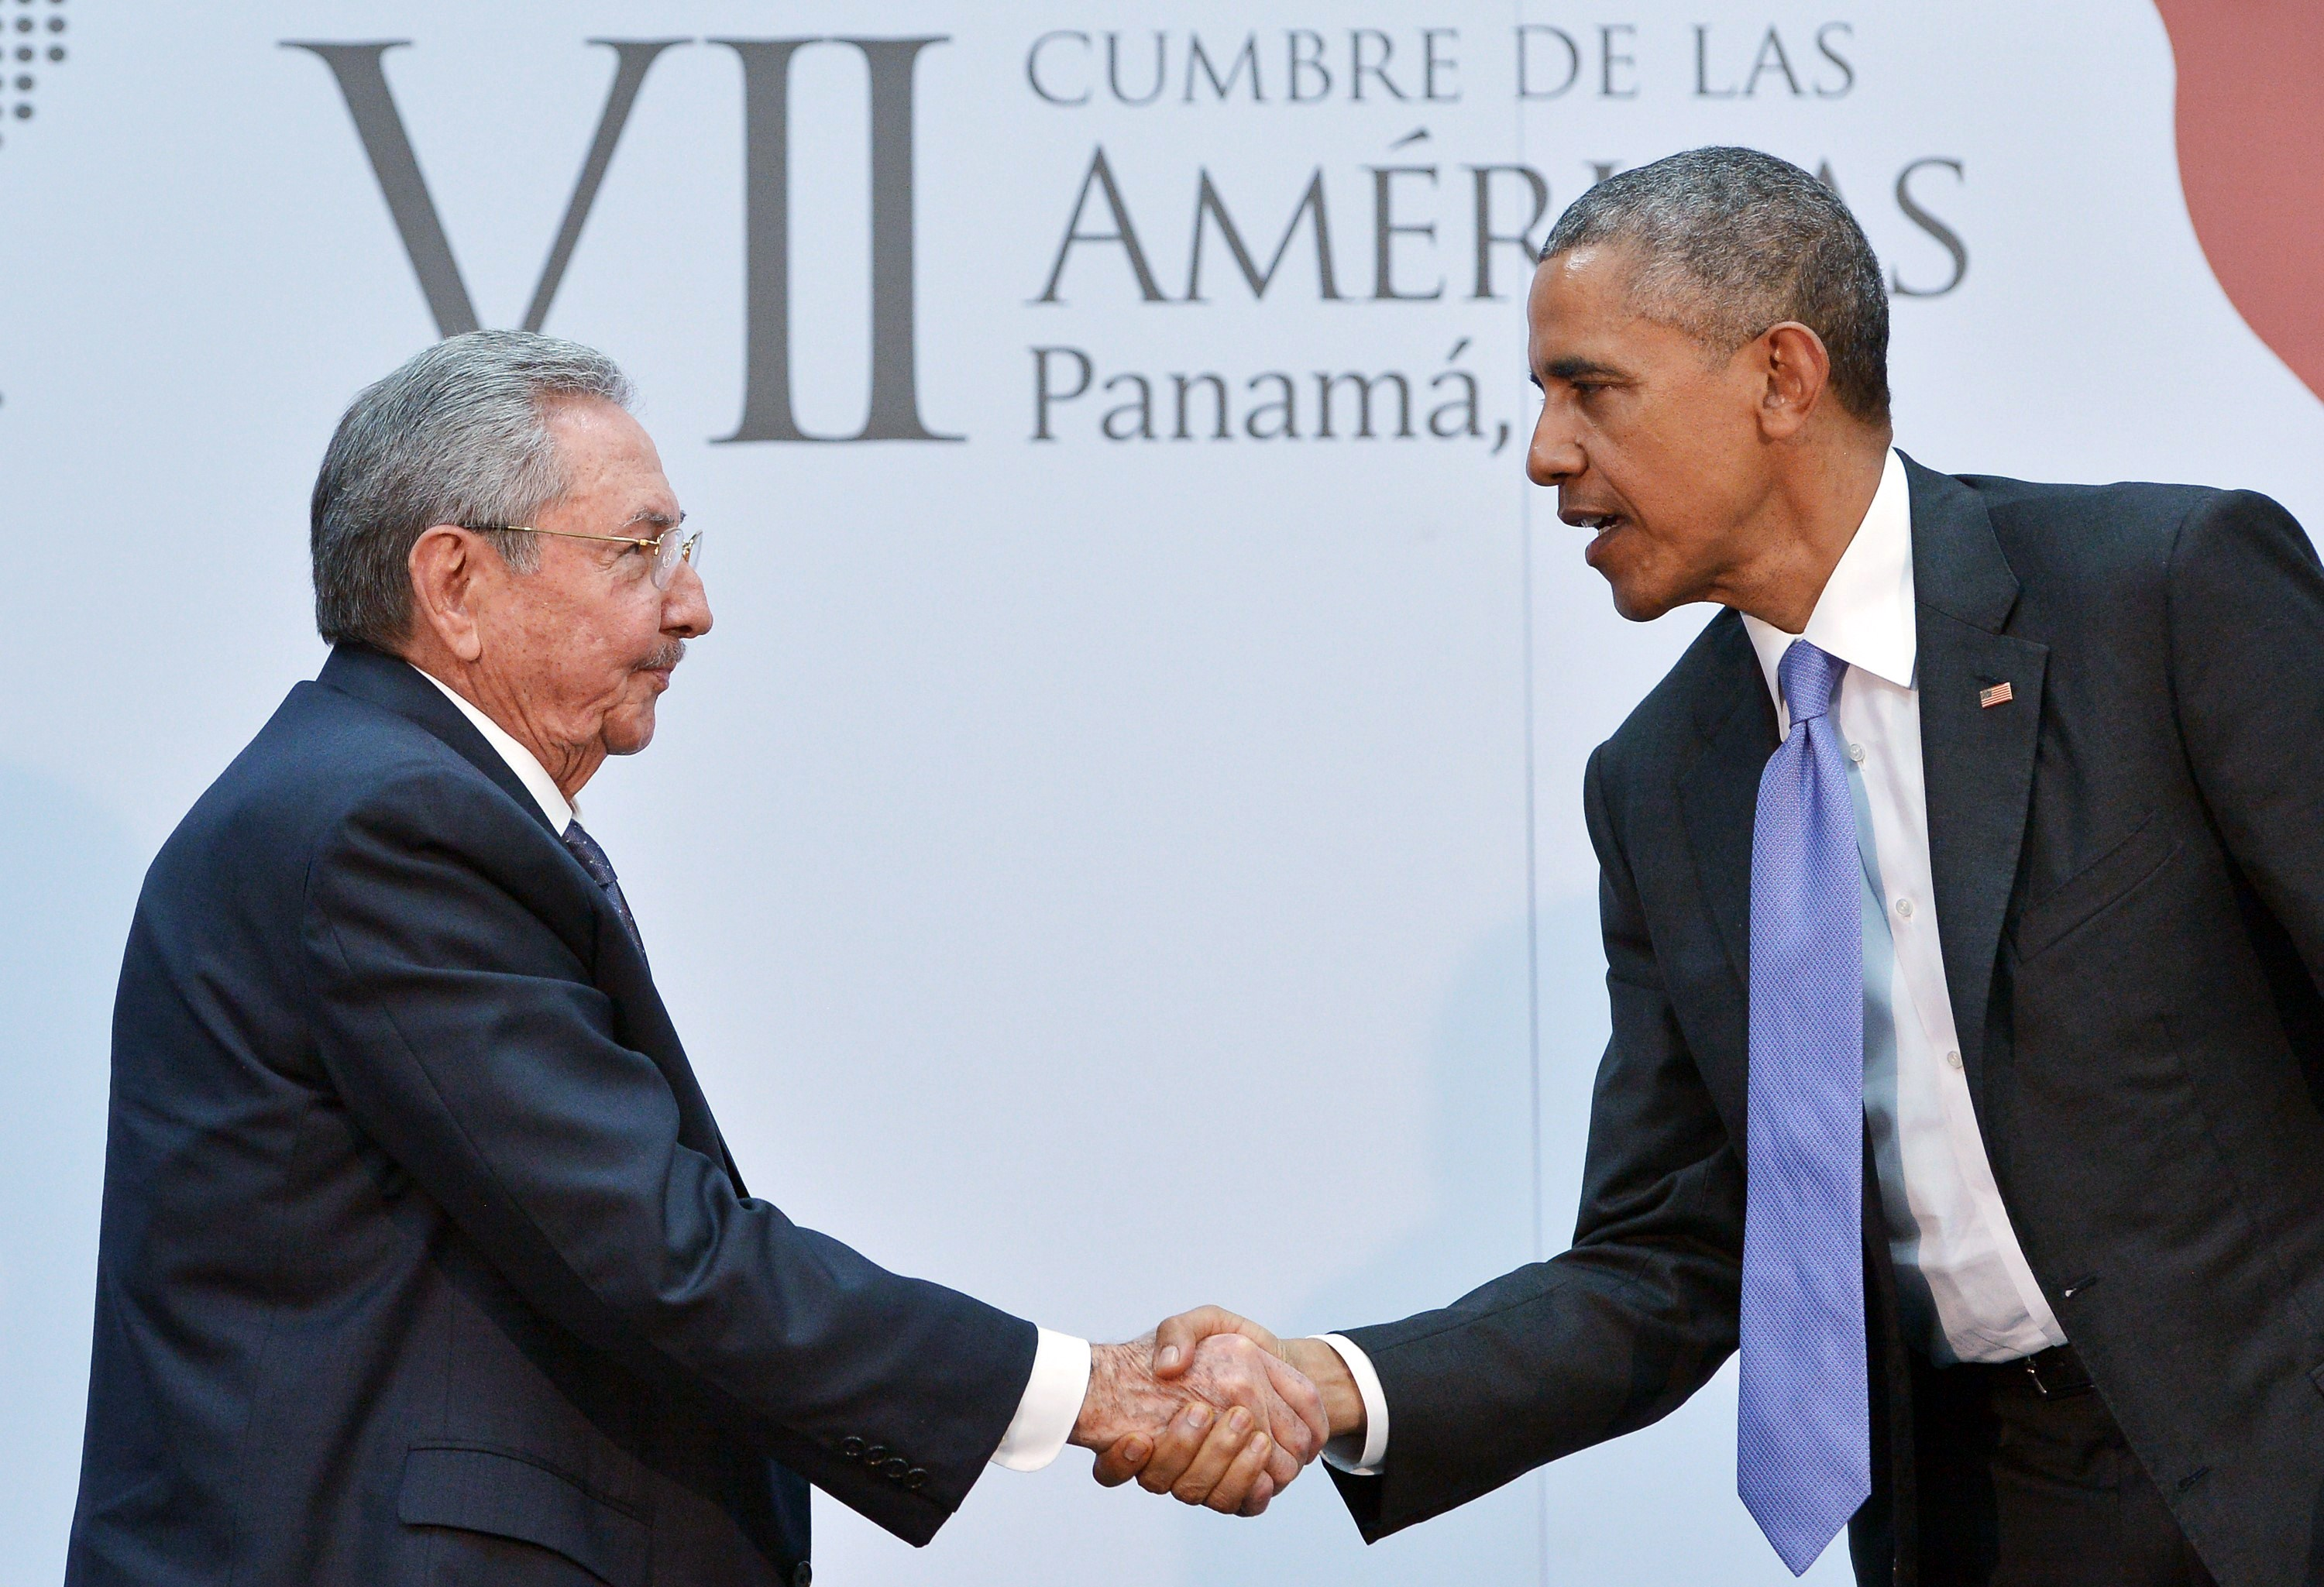 President Obama and Cuban President Raul Castro shake hands in April